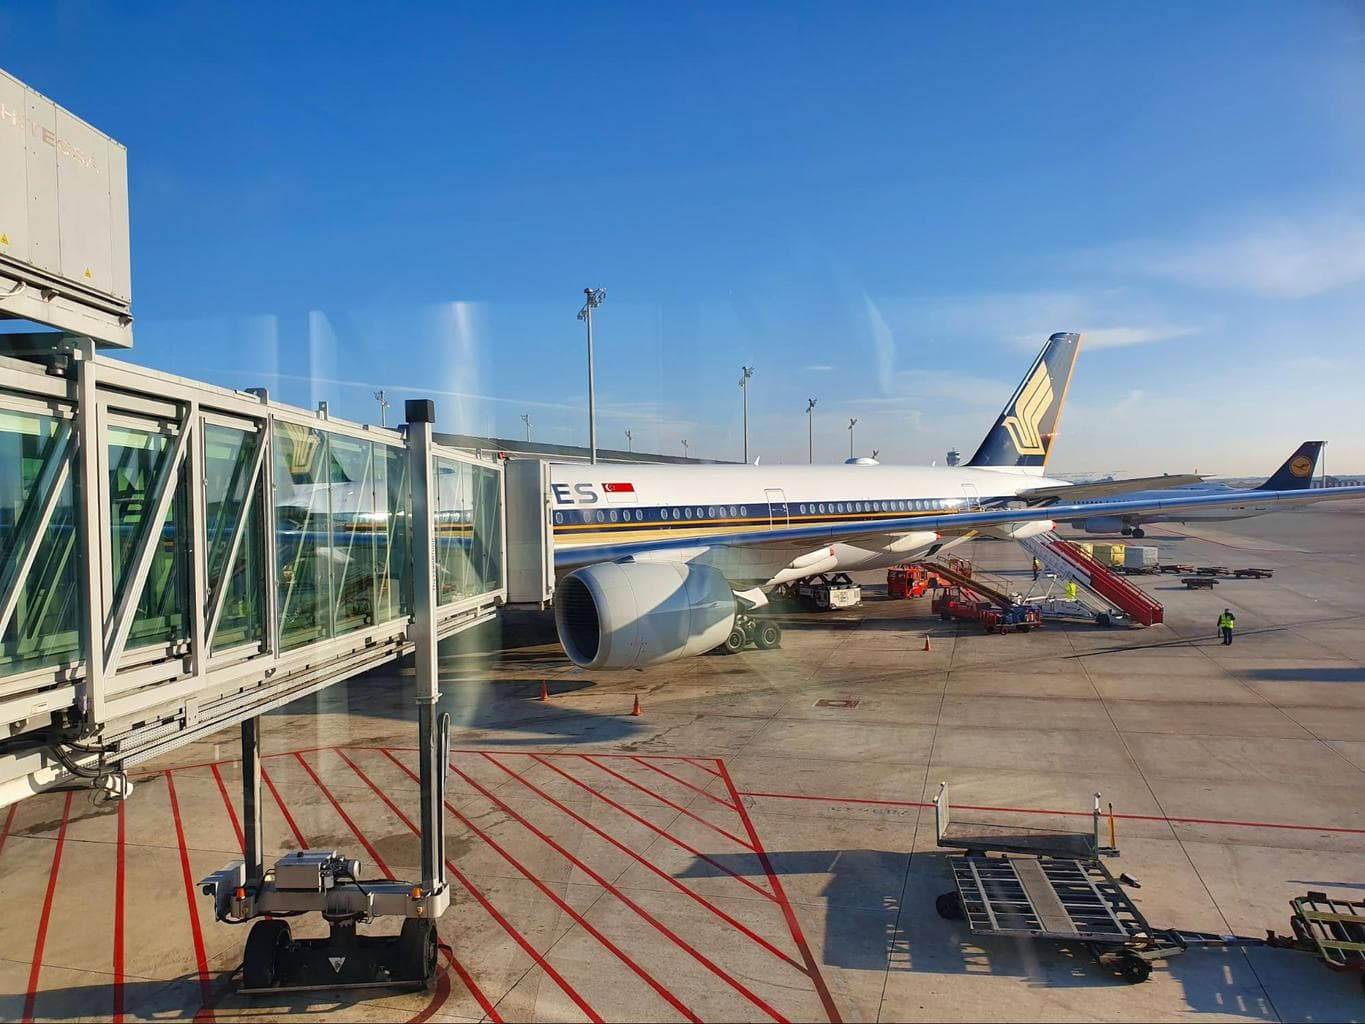 Singapore Airlines A350-900 aircraft